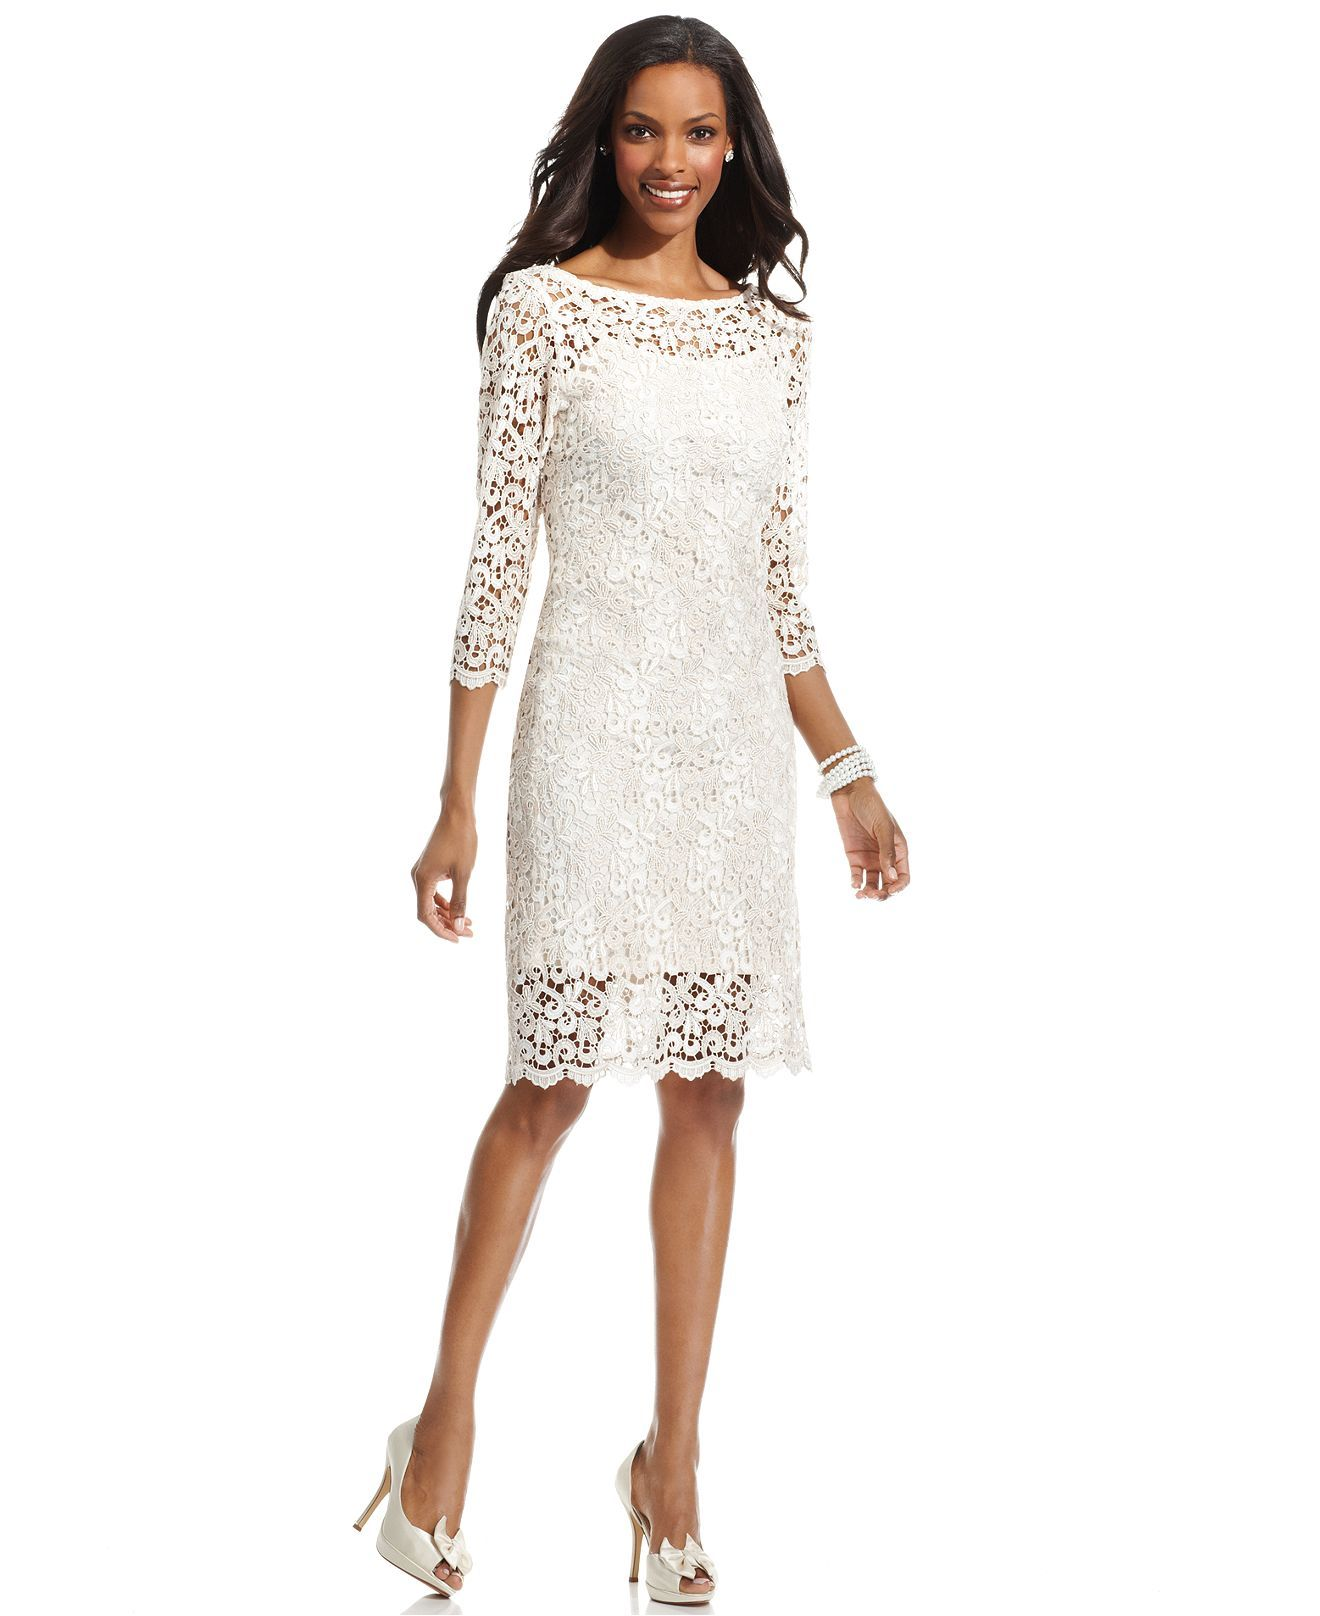 Wedding dresses at macy's  Marina Dress ThreeQuarterSleeve Lace Sheath for vow renewal